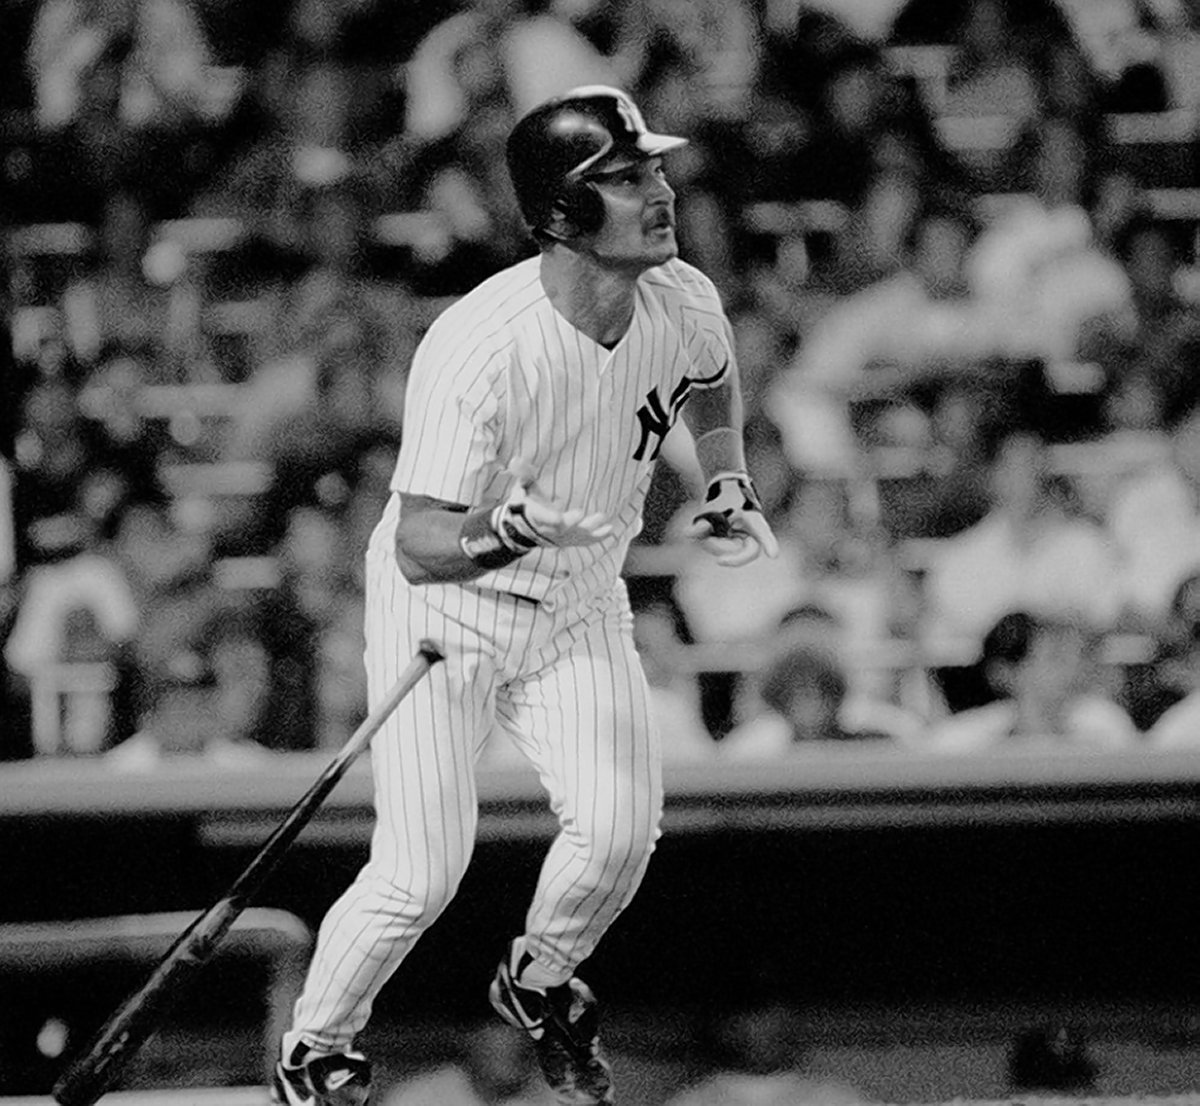 Fellow ex-Yankees captains Don Mattingly, Thurman Munson could be headed to Hall of Fame